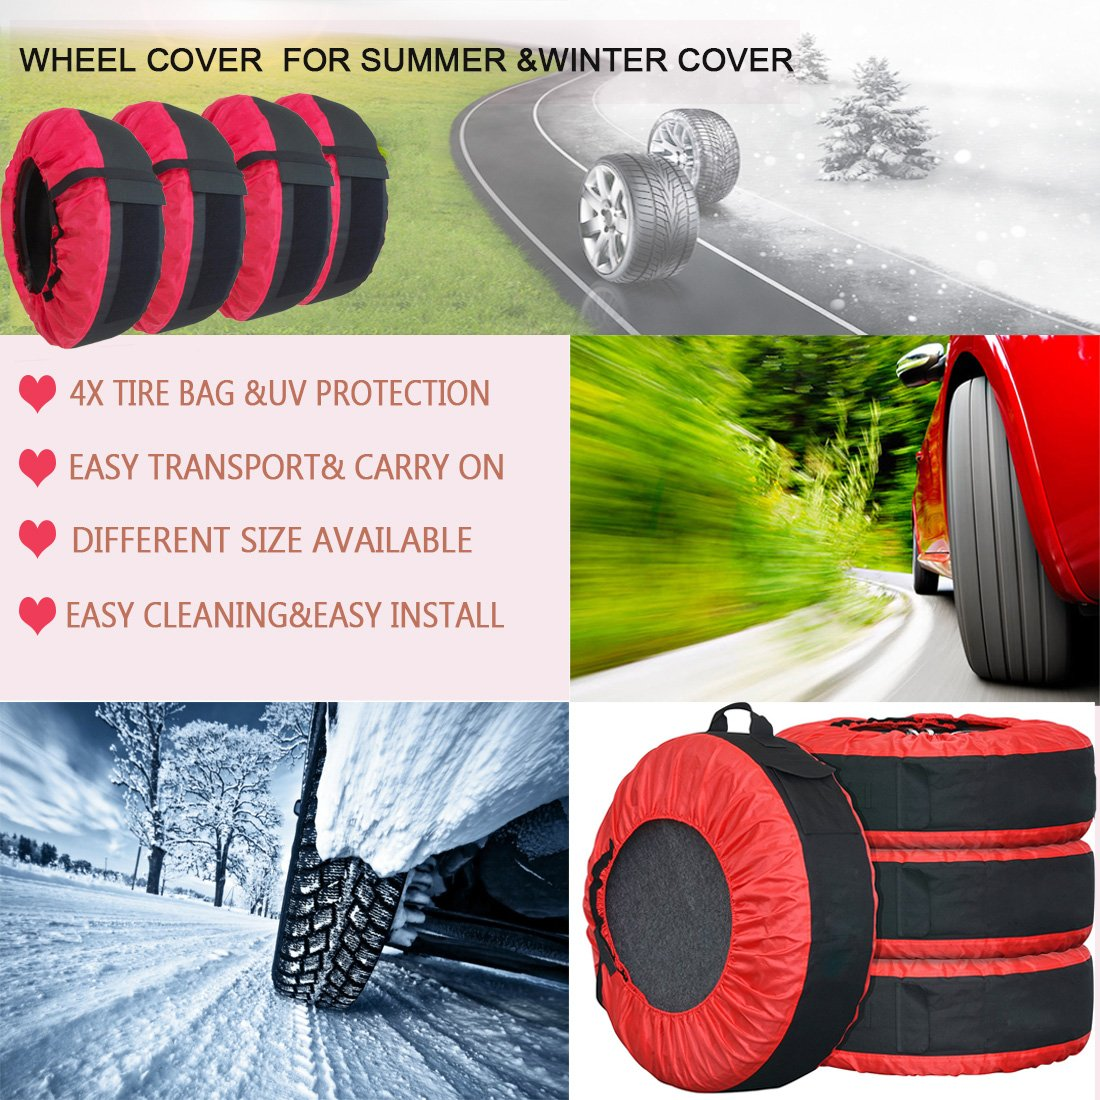 Tire Tote FLR Adjustable Waterproof 30in Tire Covers Protection Covers Seasonal Tire Storage Bag for Car Off Road Truck Tire Totes Set of 4